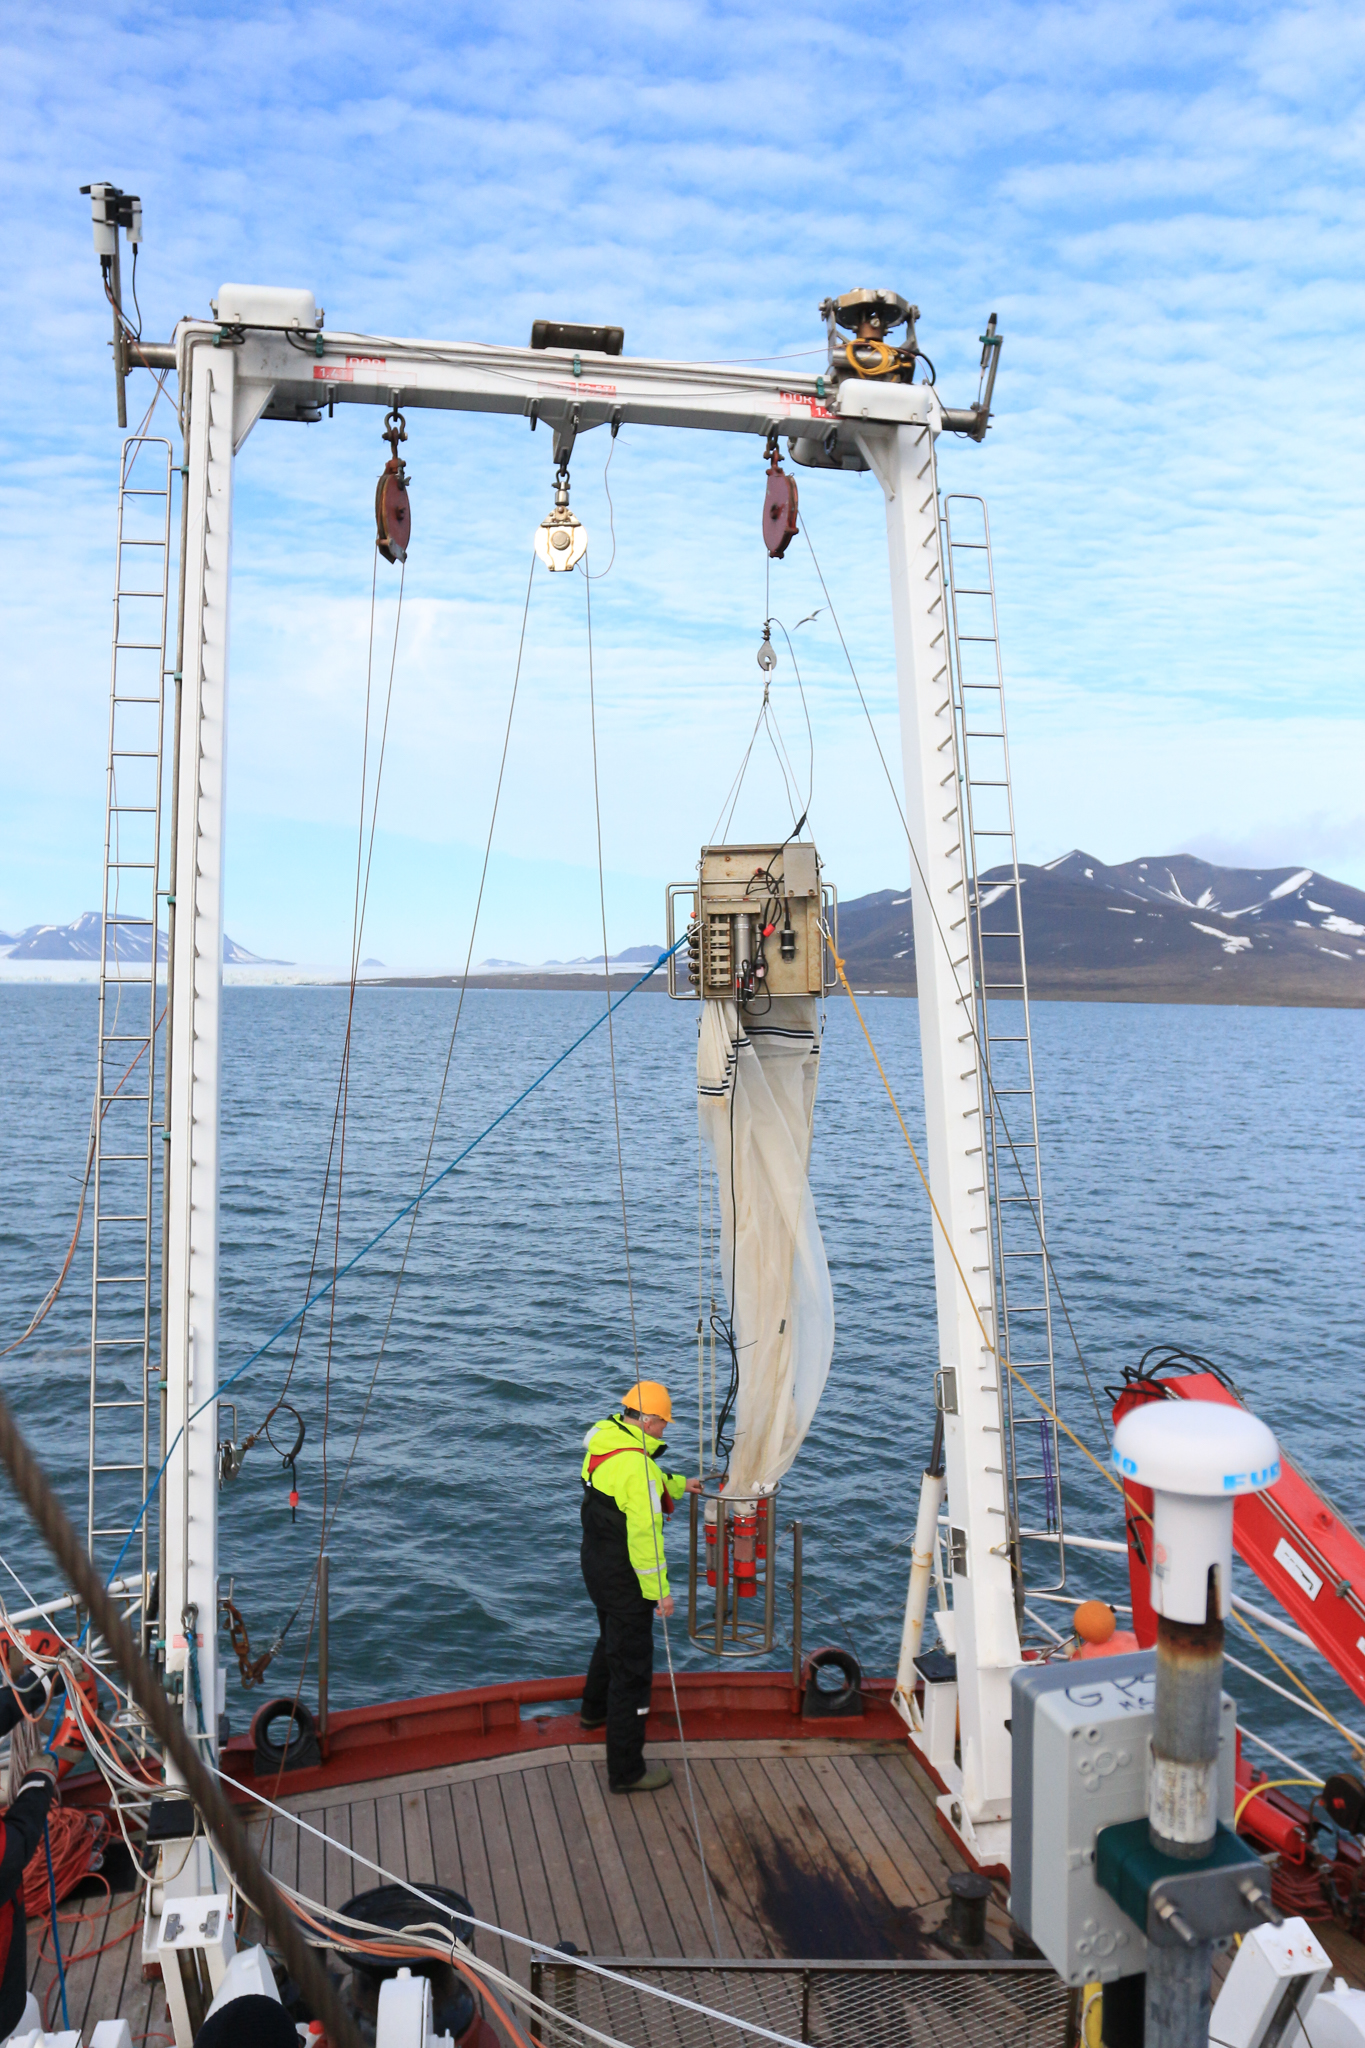 Scientists and crew lower the multinet into the ocean. The device opens and closes net bags at various depths so scientists can capture and study the organisms that live in different parts of the water column. Photograph by Hannah Hoag